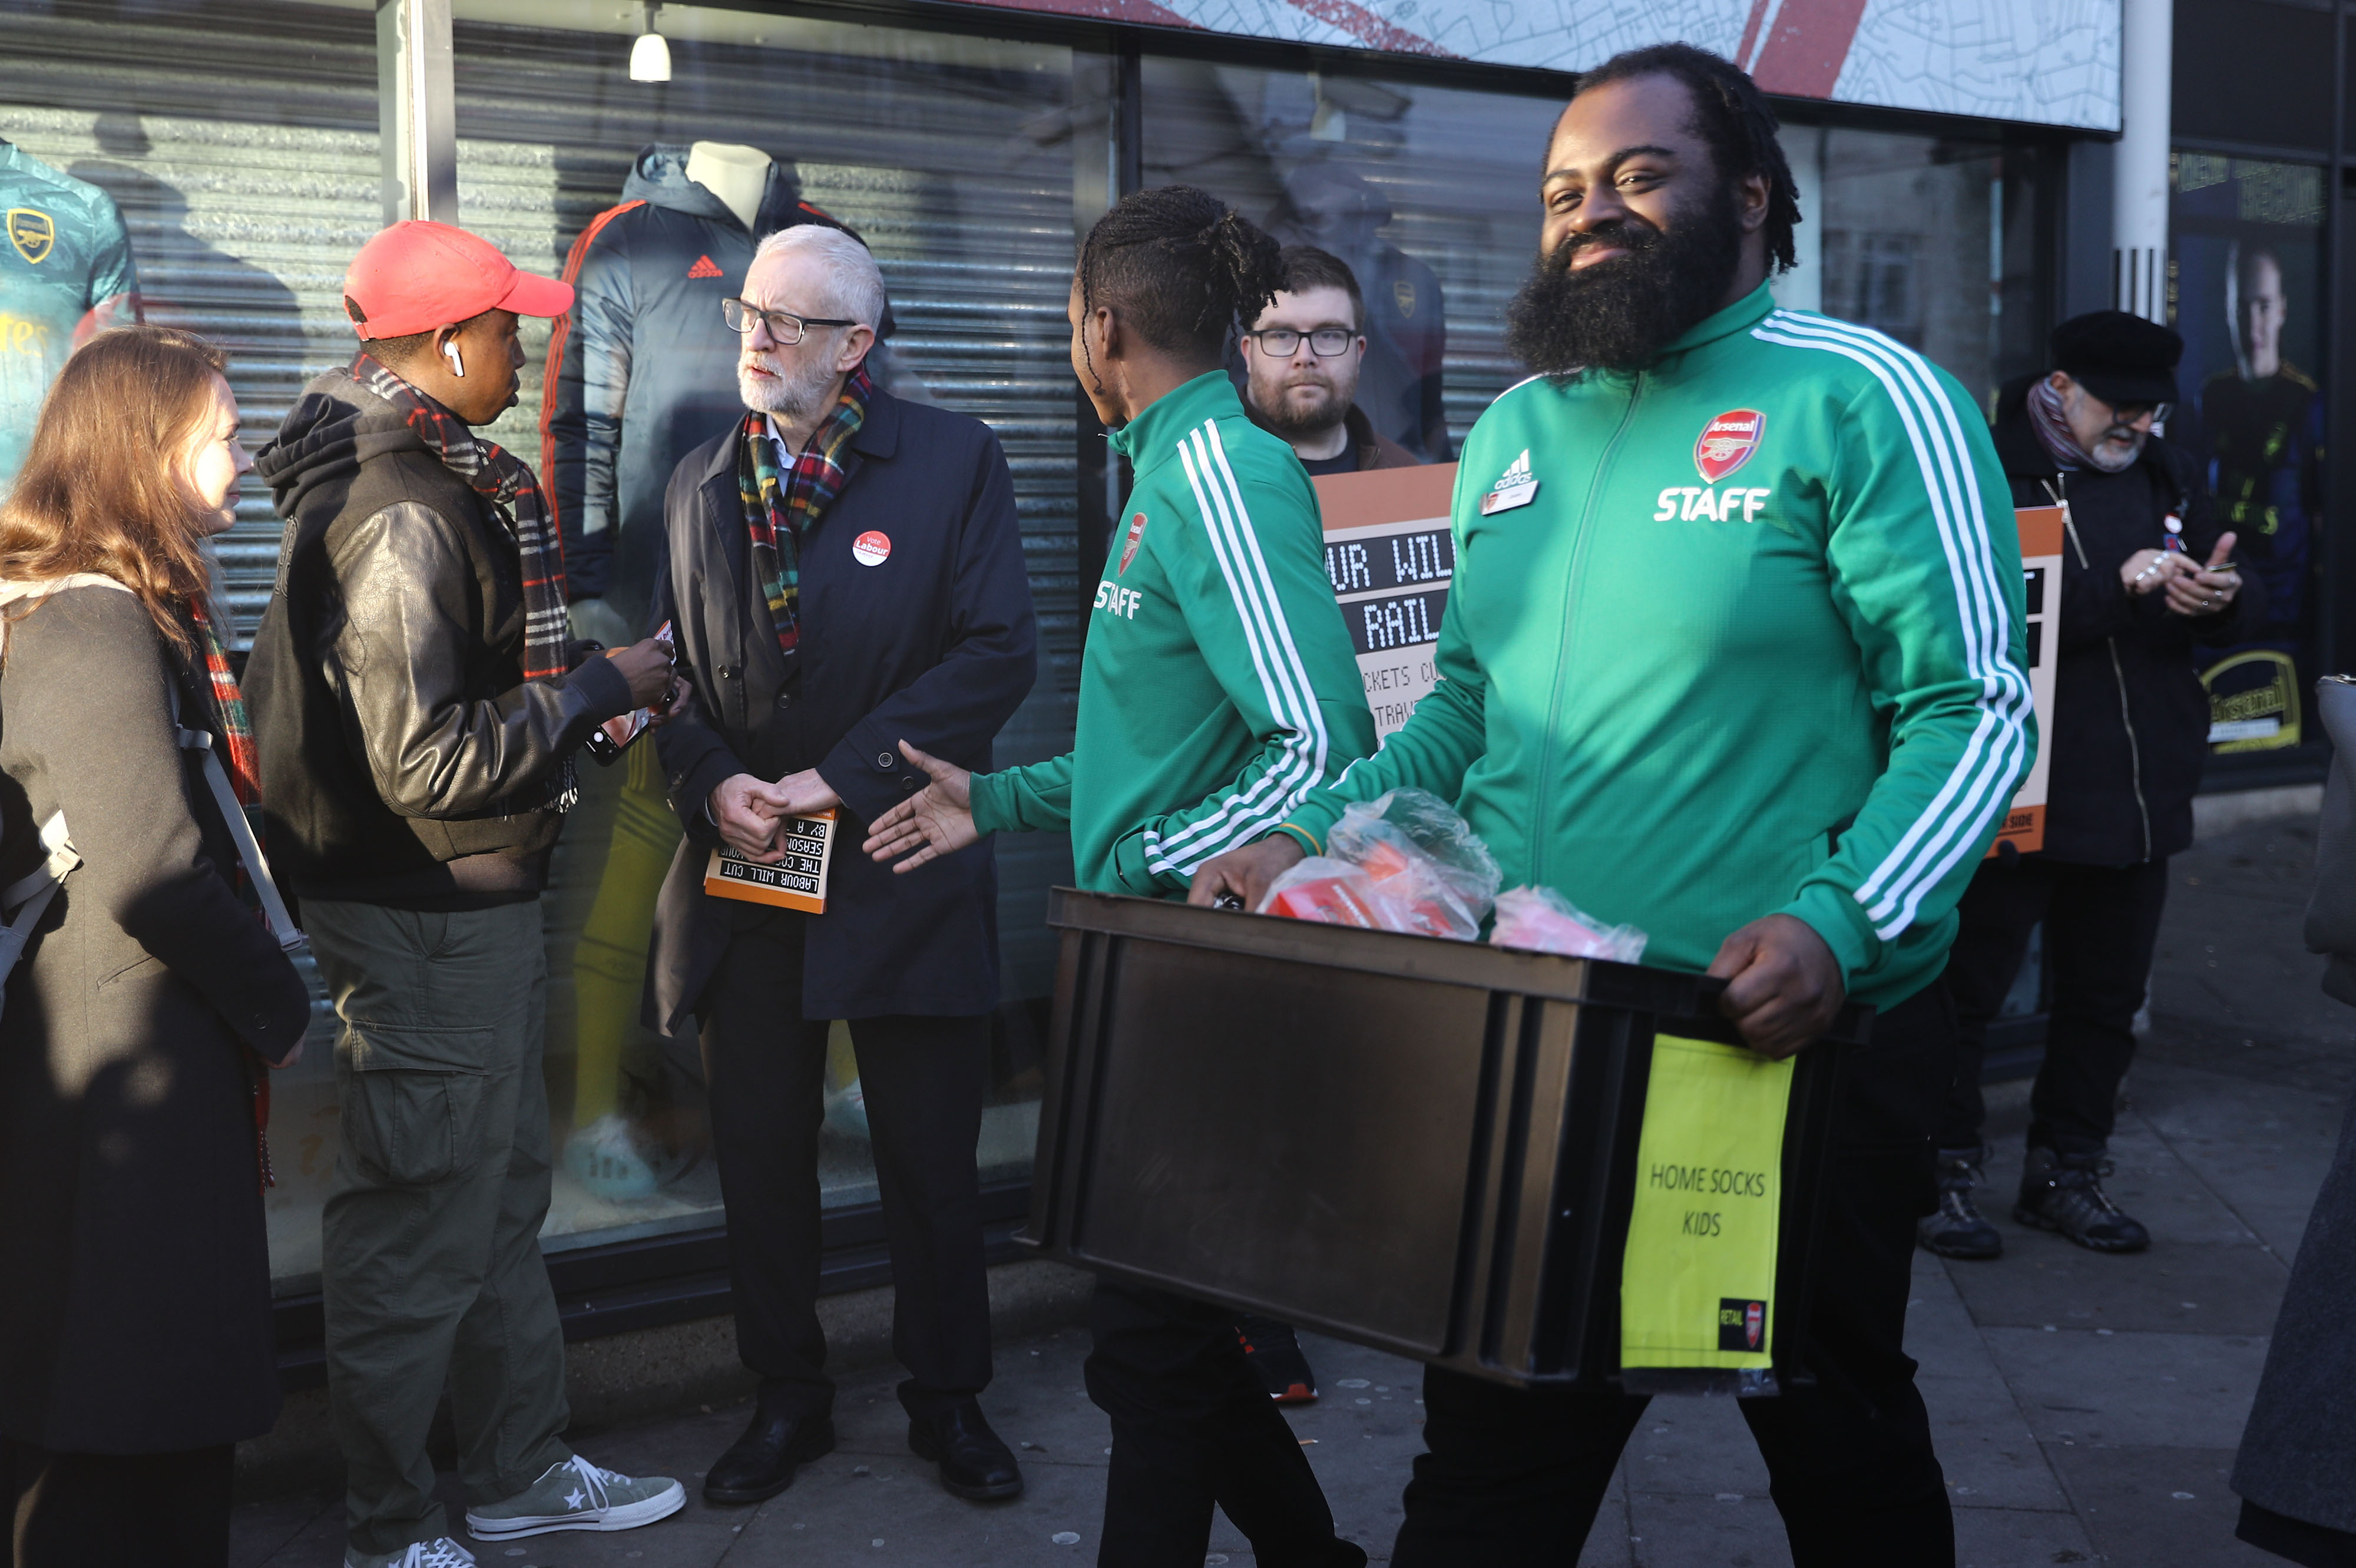 Labour leader, Jeremy Corbyn (centre left) leafleting outside Finsbury Park station, London, whilst on the General Election campaign trail.